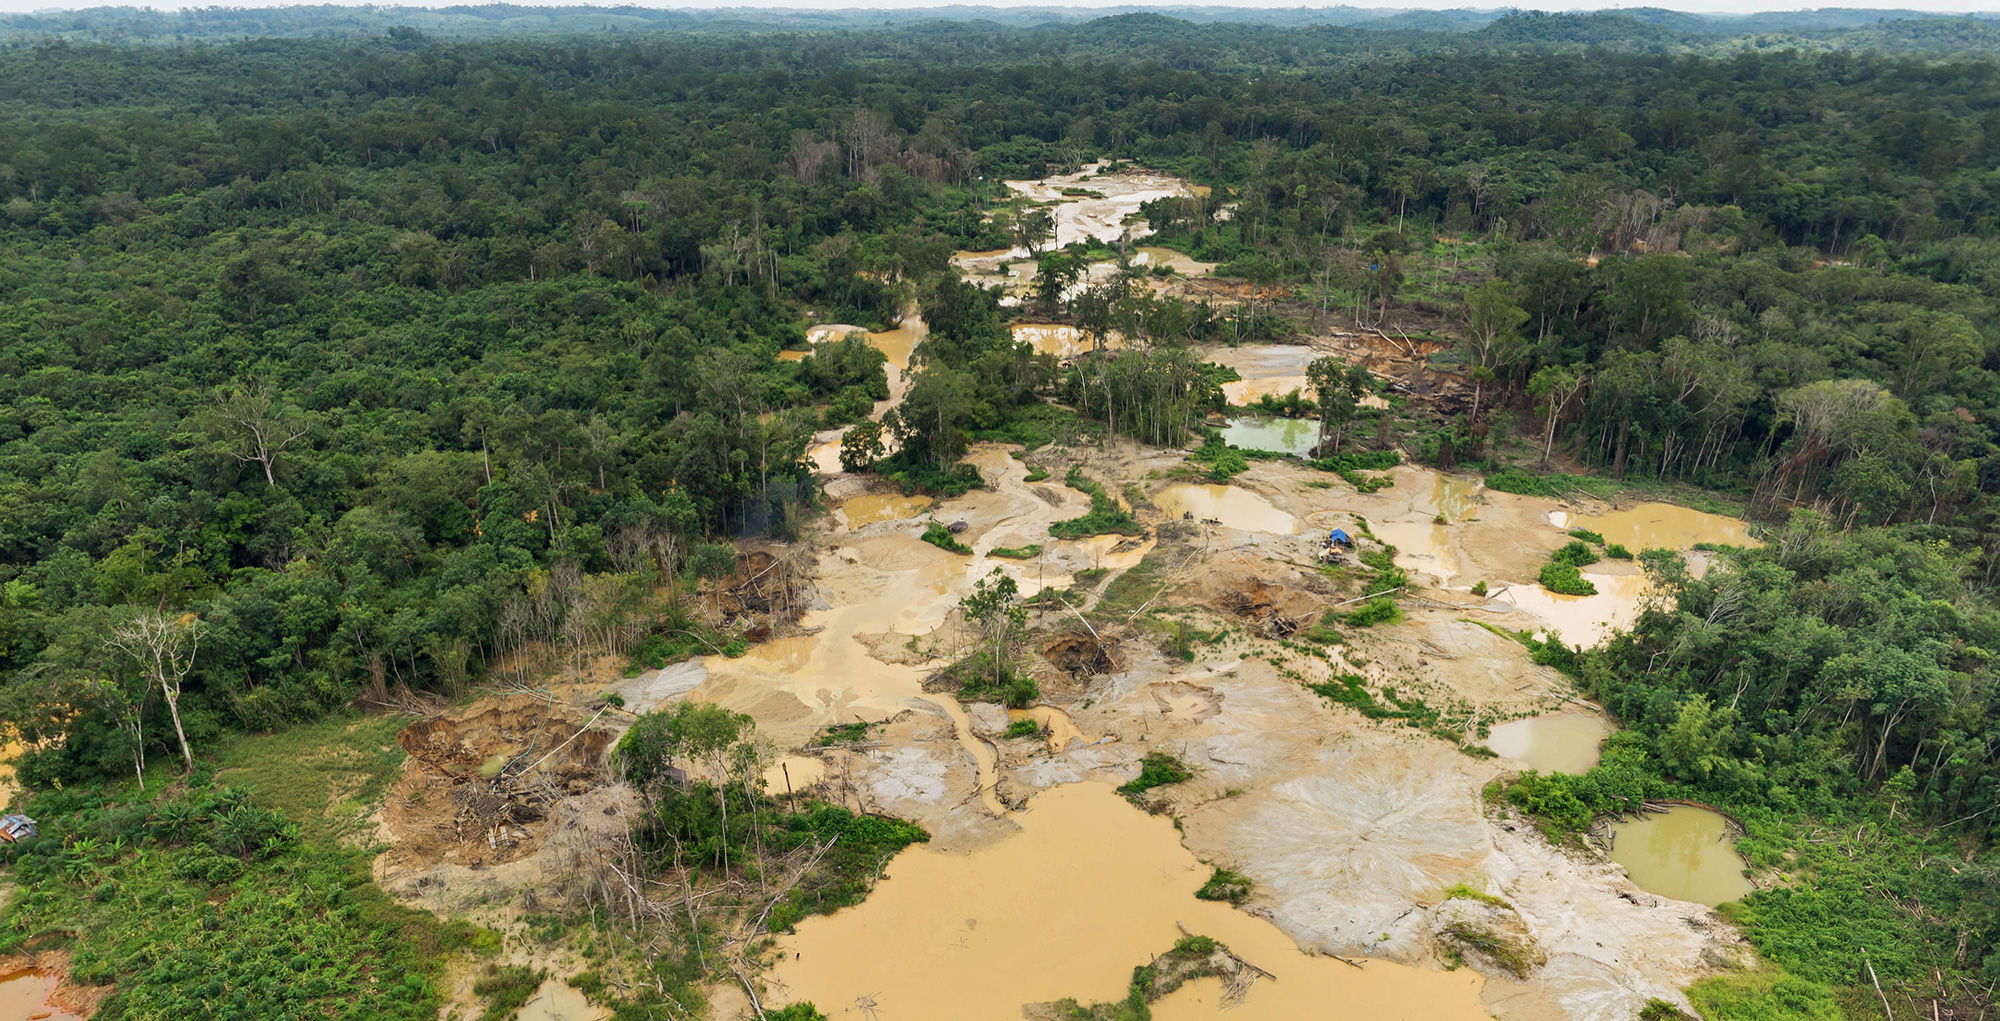 Extract of an aerial 360° of an informal gold mine in Central Kalimantan, Indonesia. Click the image to see the full panorama.